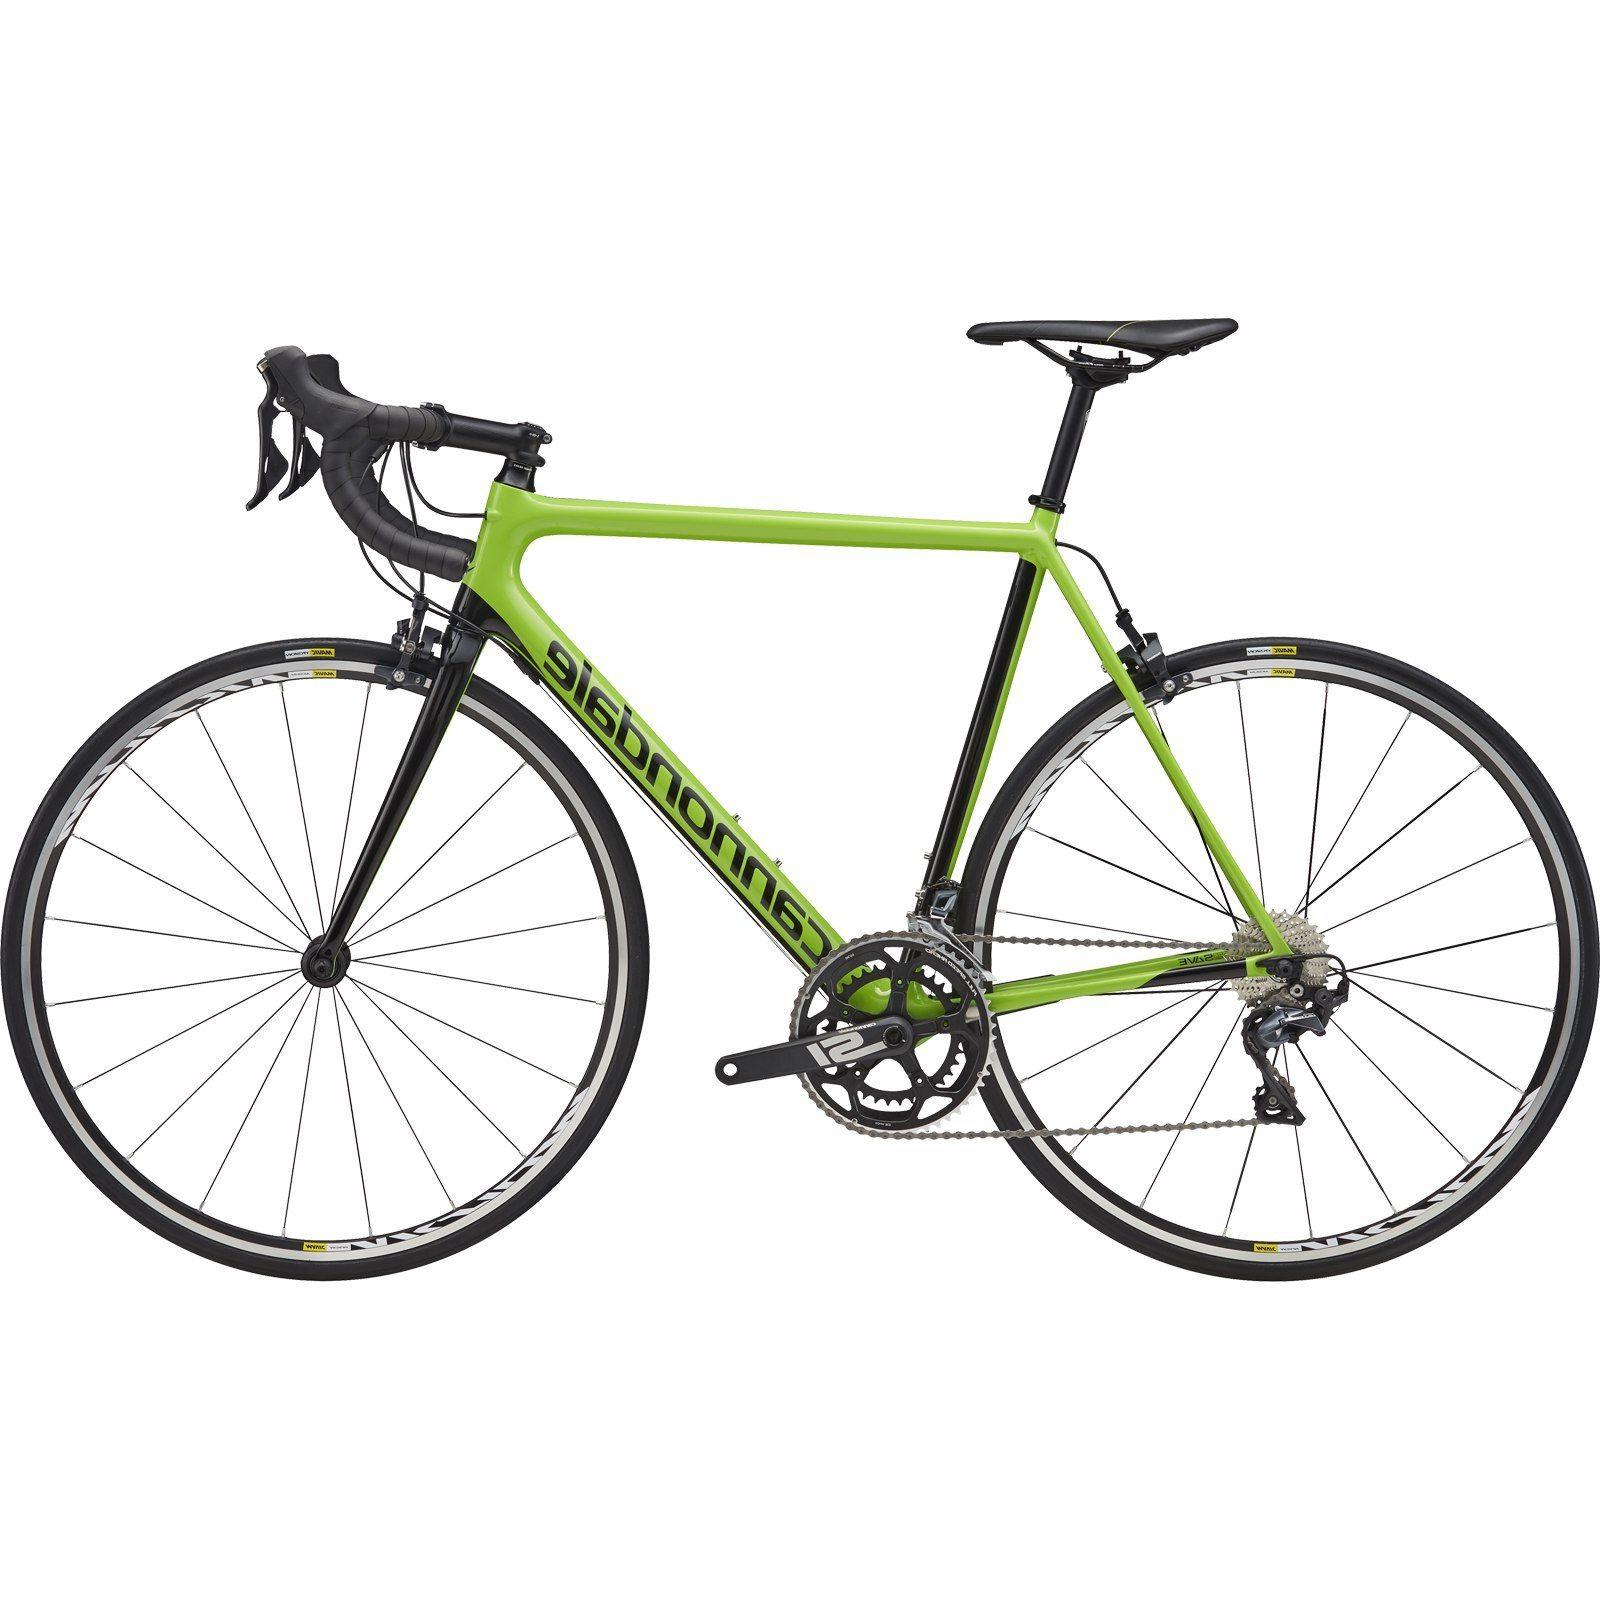 2018 Cannondale SUPERSIX EVO Ultegra Carbon Road Bike 60cm